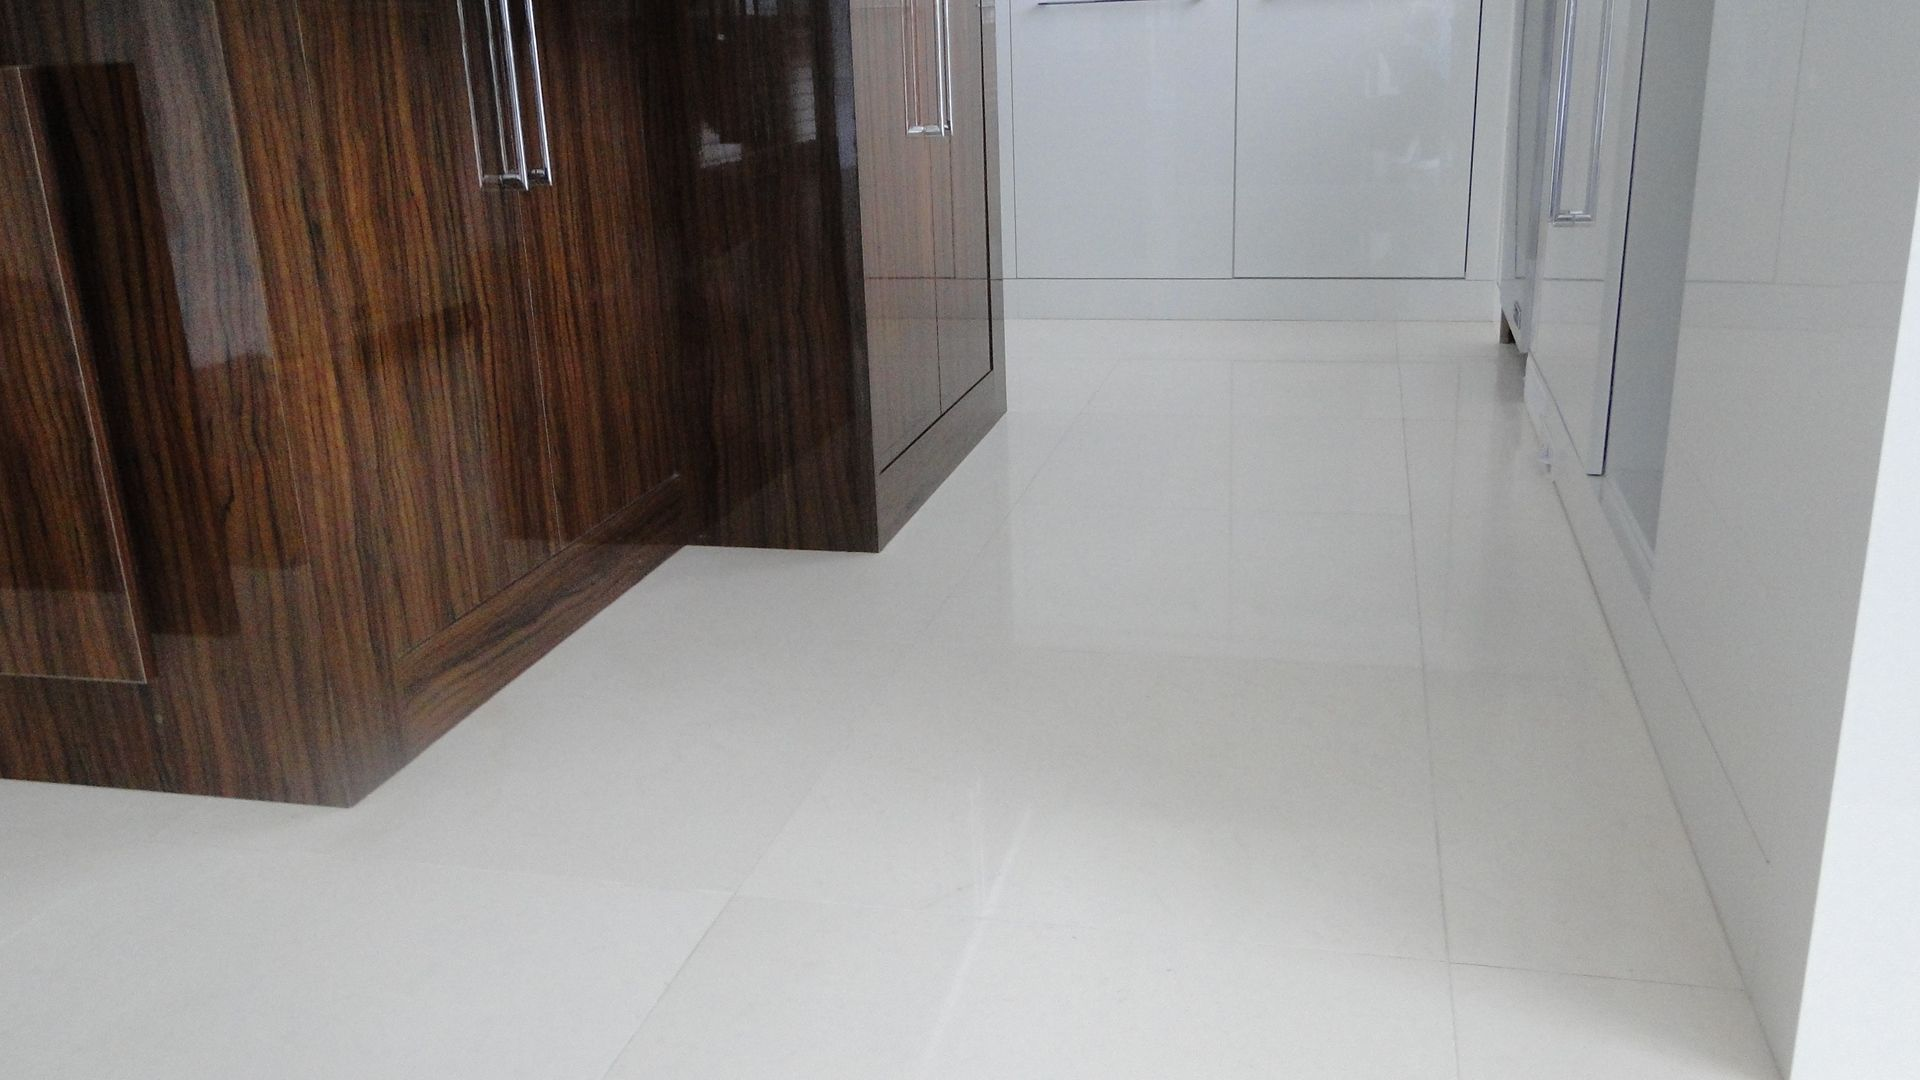 One of the most consistent Marbles we carry, Piedra blanco